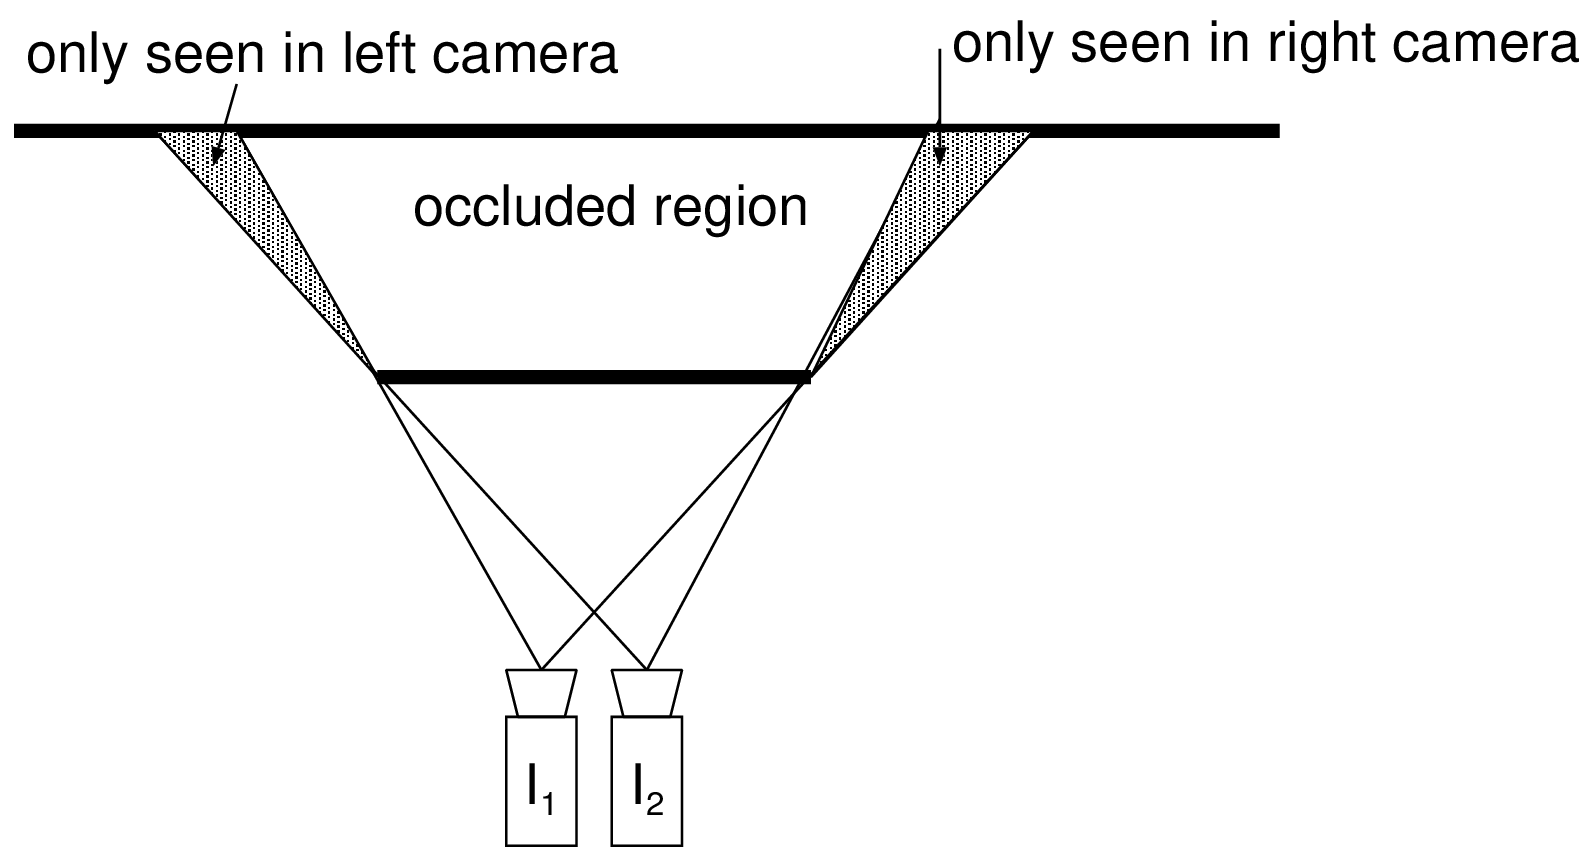 hight resolution of figure 3 4 some regions visible in the image i1 i 1 are occluded in the image i2 i 2 which blocks the detection of point correspondences